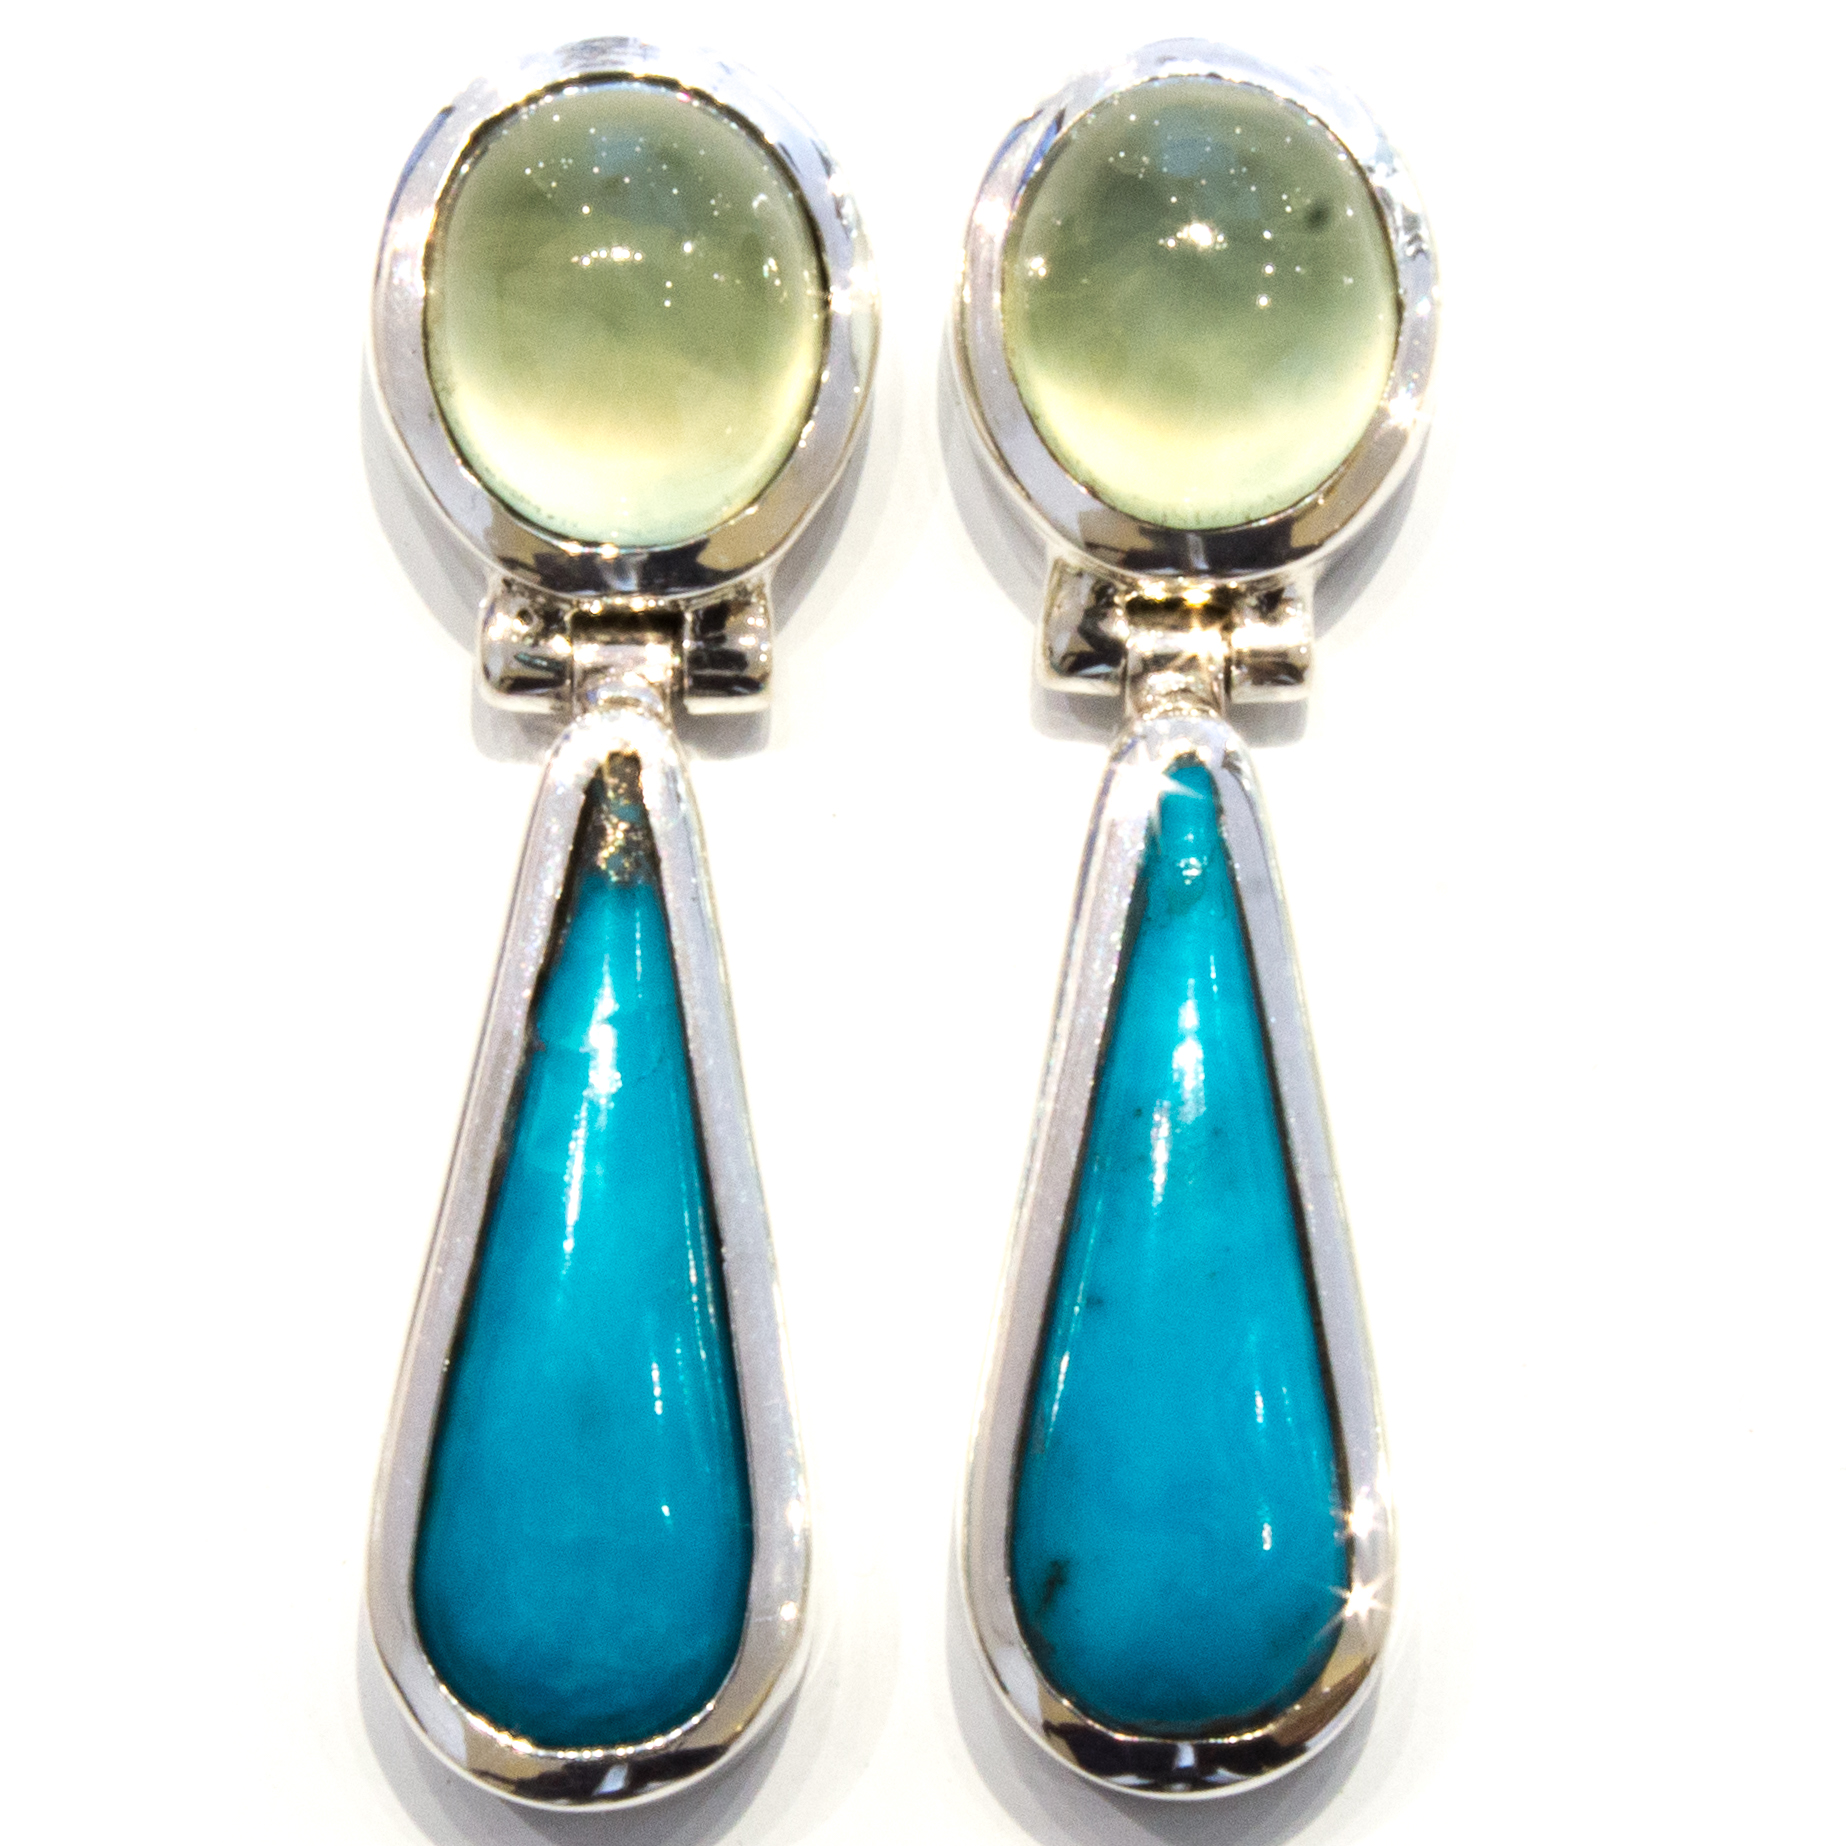 Prehnite and Turquoise Handmade Earrings